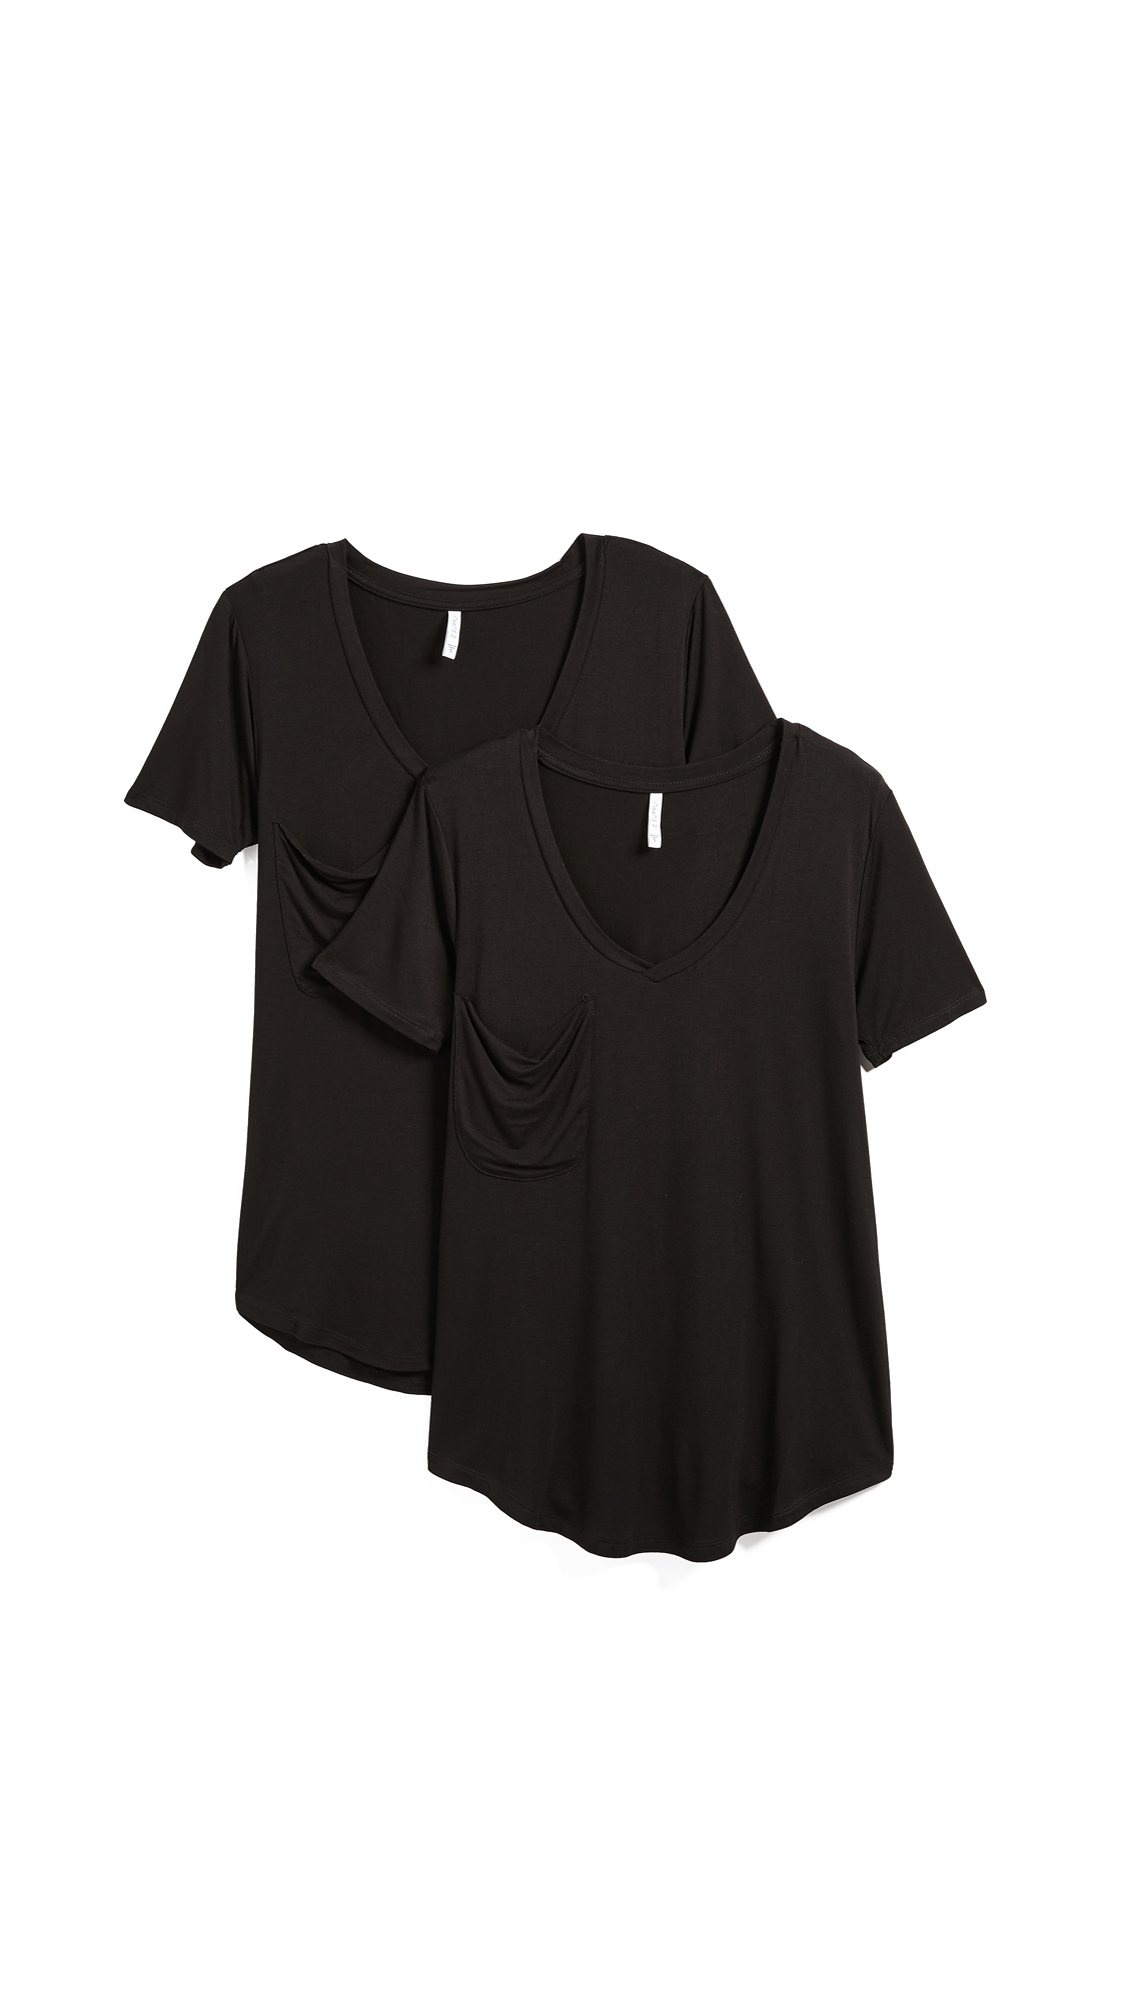 Z Supply Sleek Jersey Tee - 2 Pack In Black